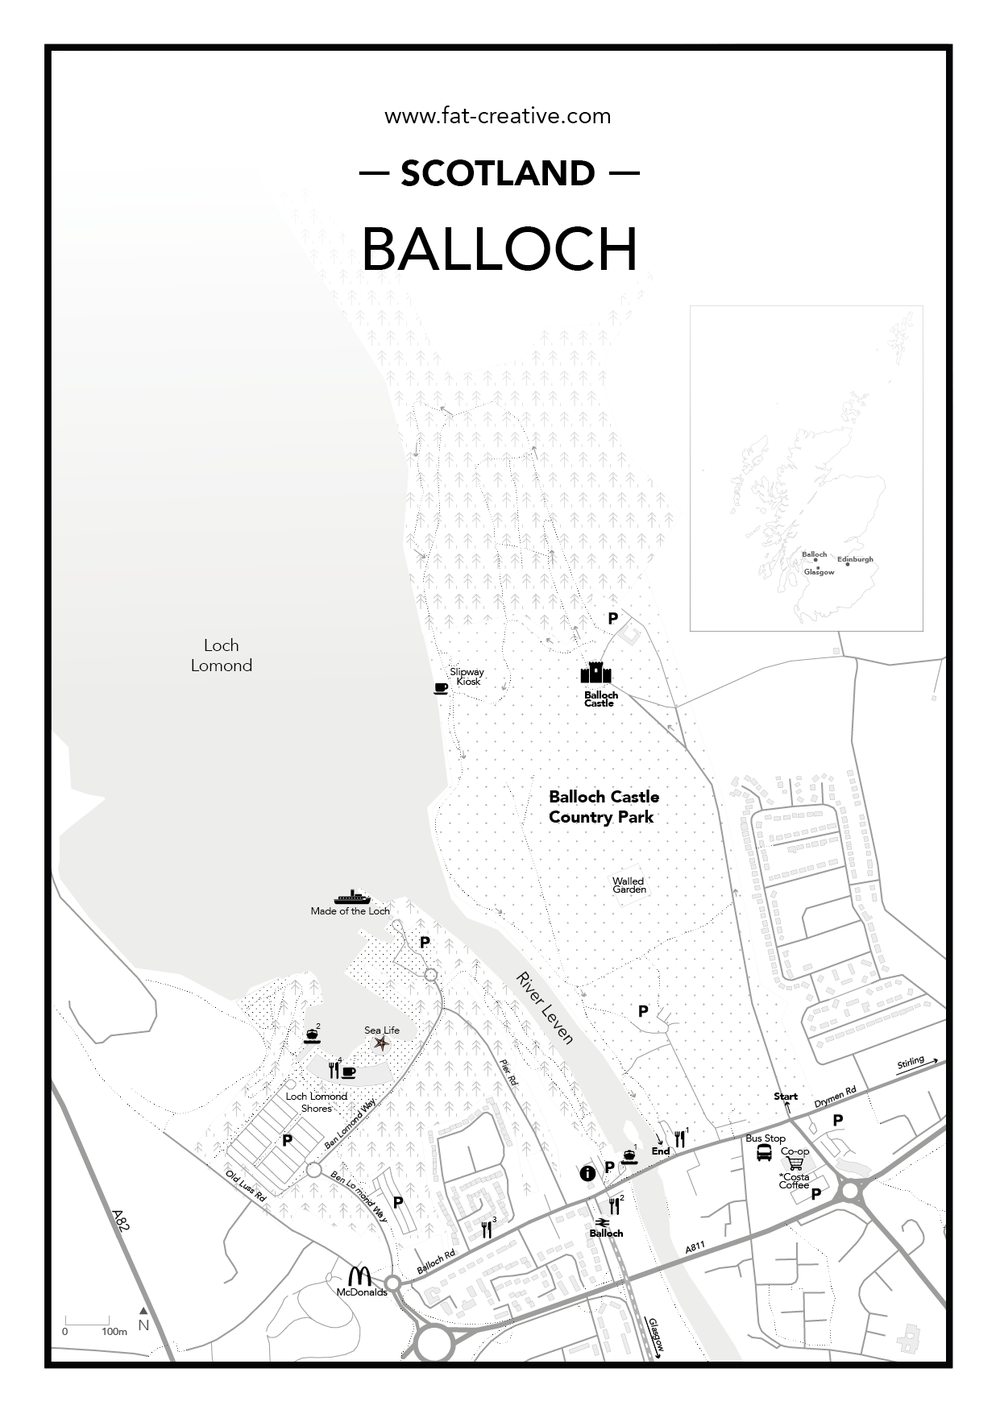 Balloch-Castle-Country-Park-02-01.png